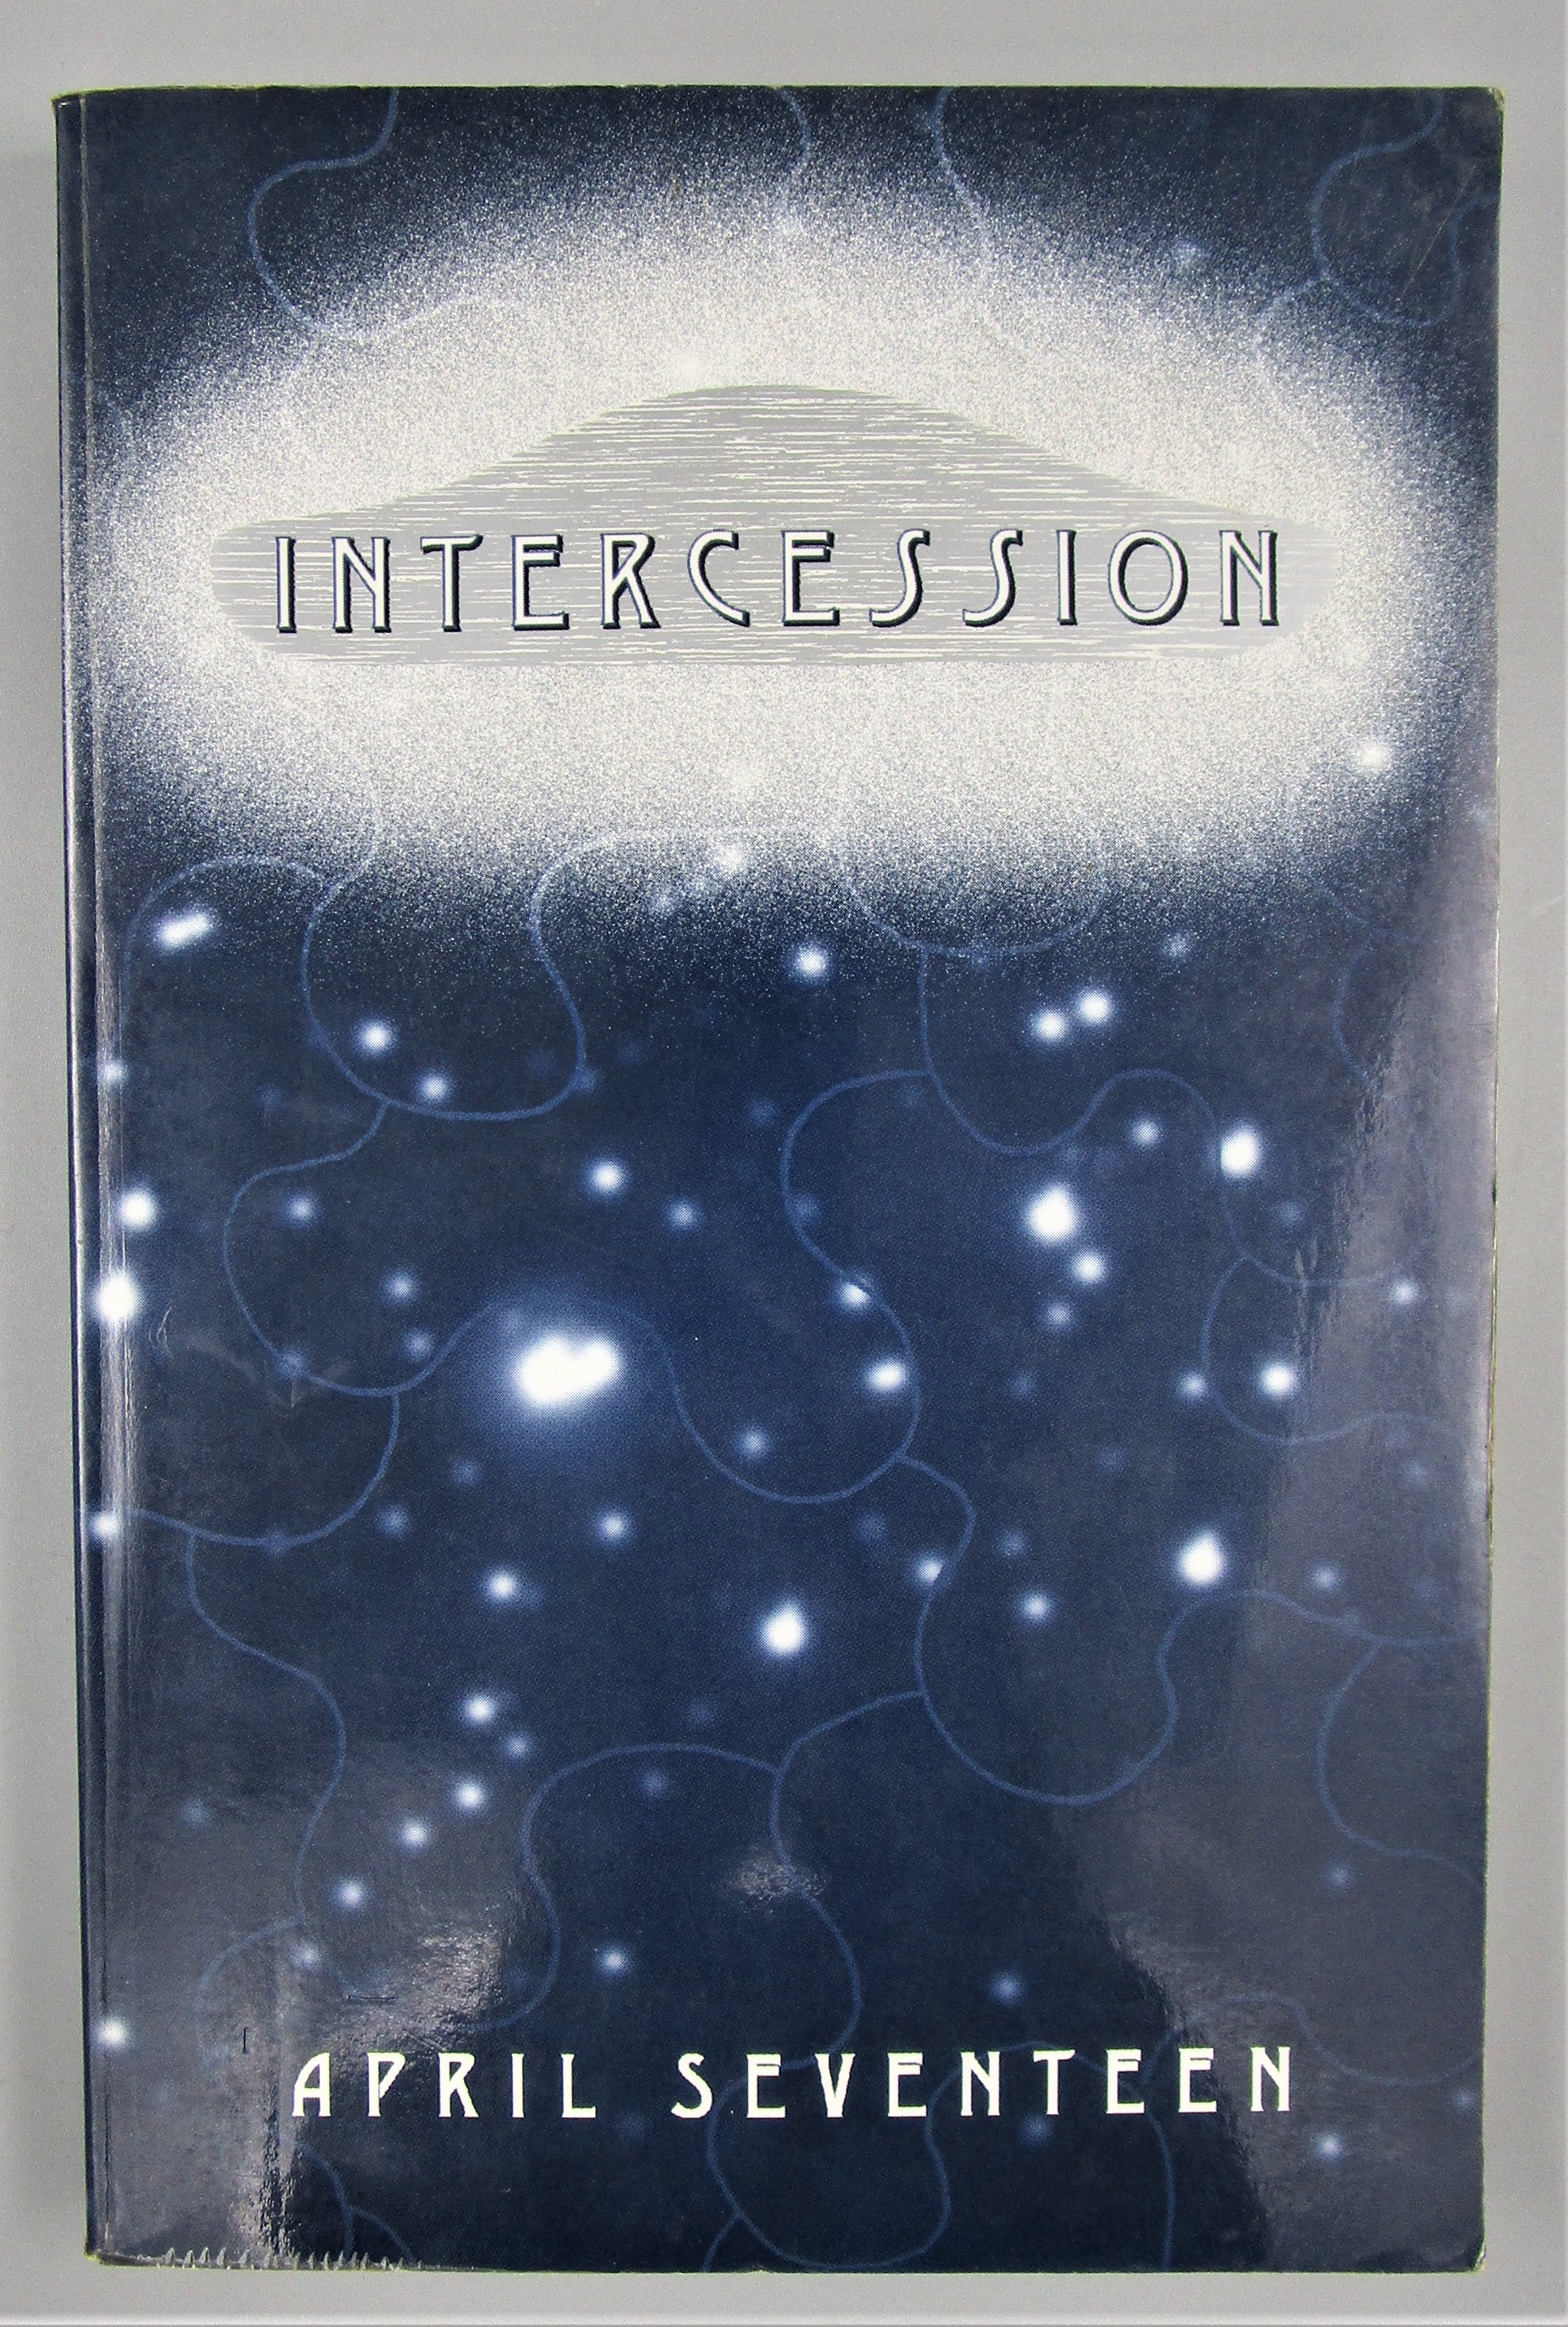 INTERCESSION, by April Seventeen - 1999 [1st Ed]